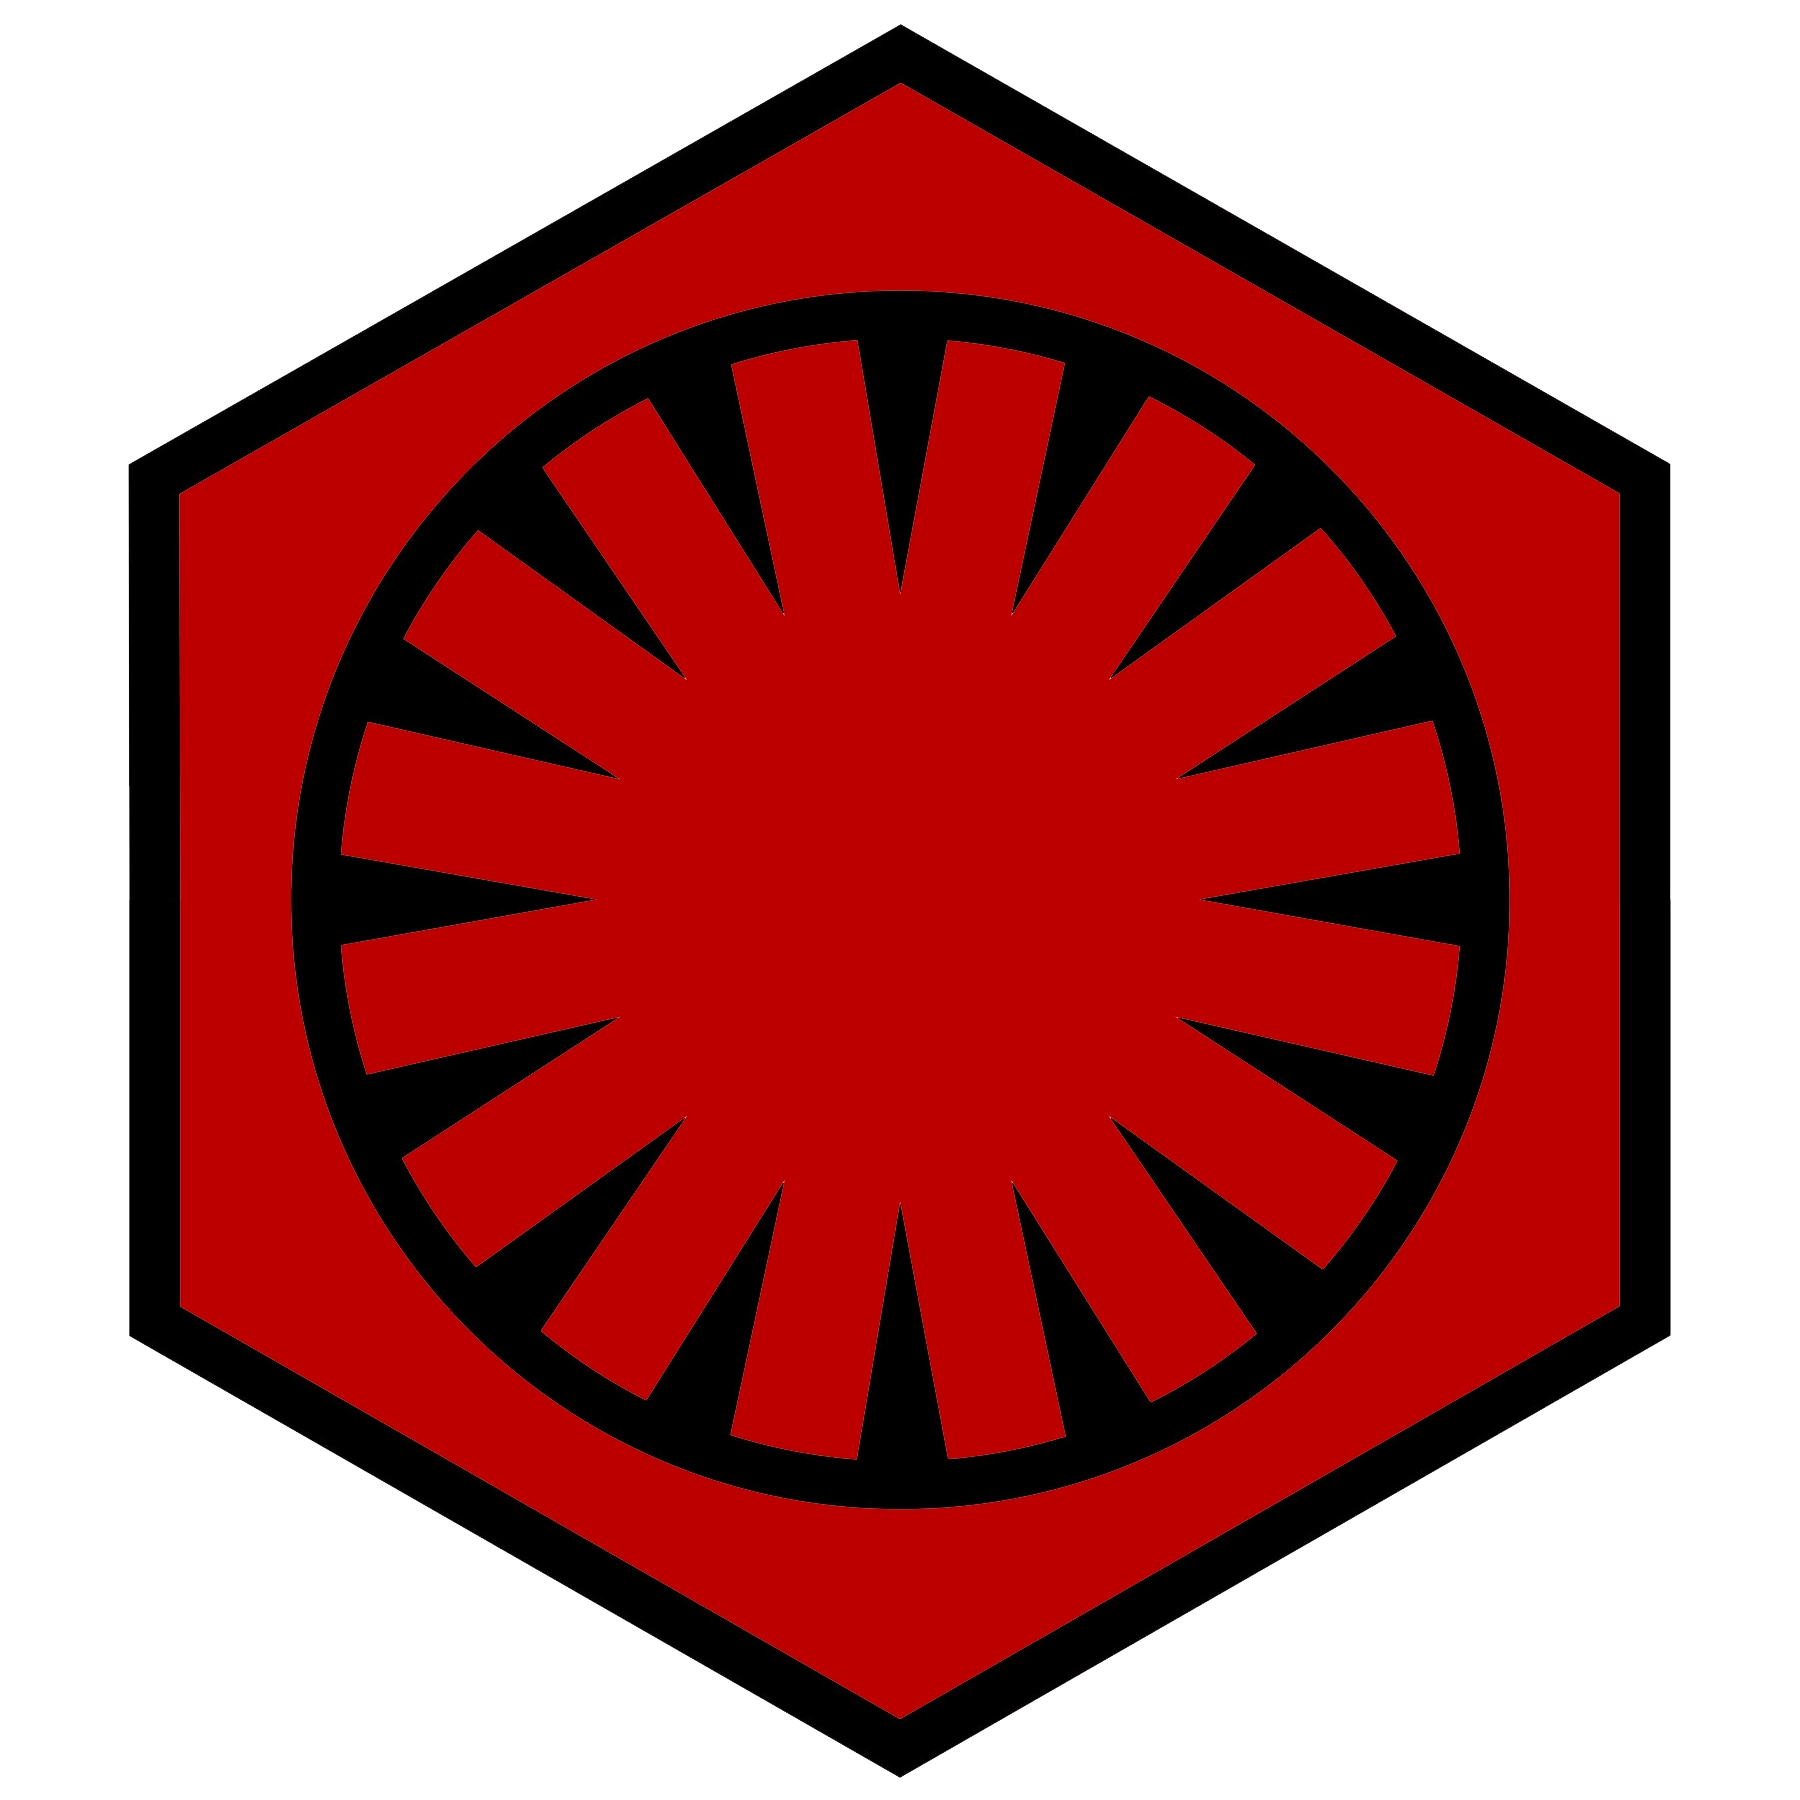 Stormtrooper svg first order. Villains wiki fandom powered